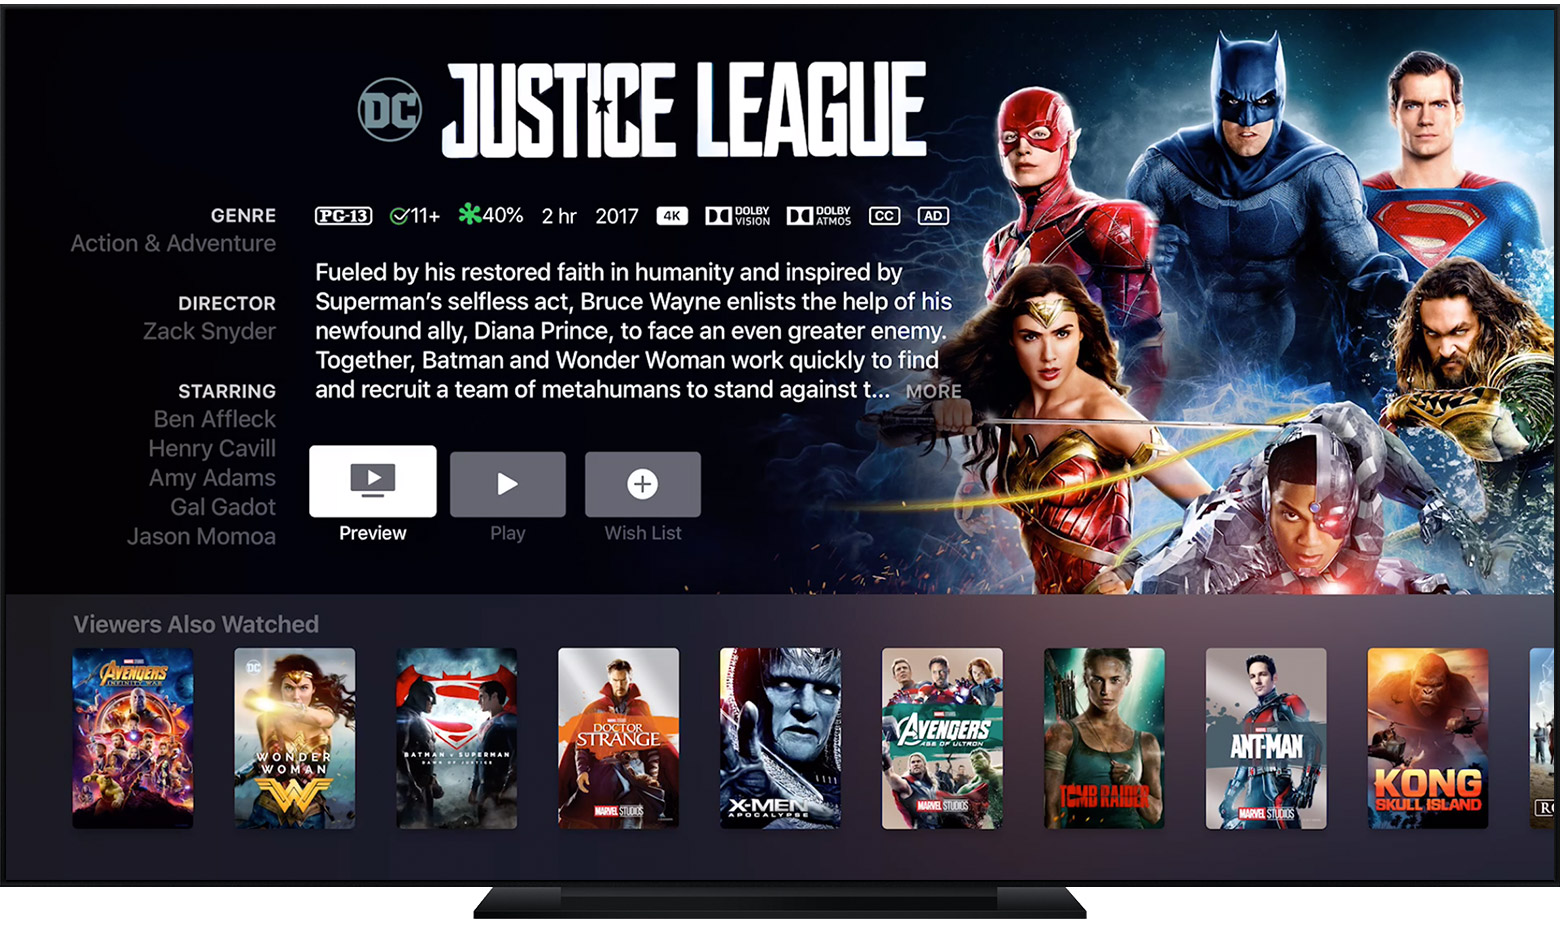 Apple TV affichant la page du film Justice League